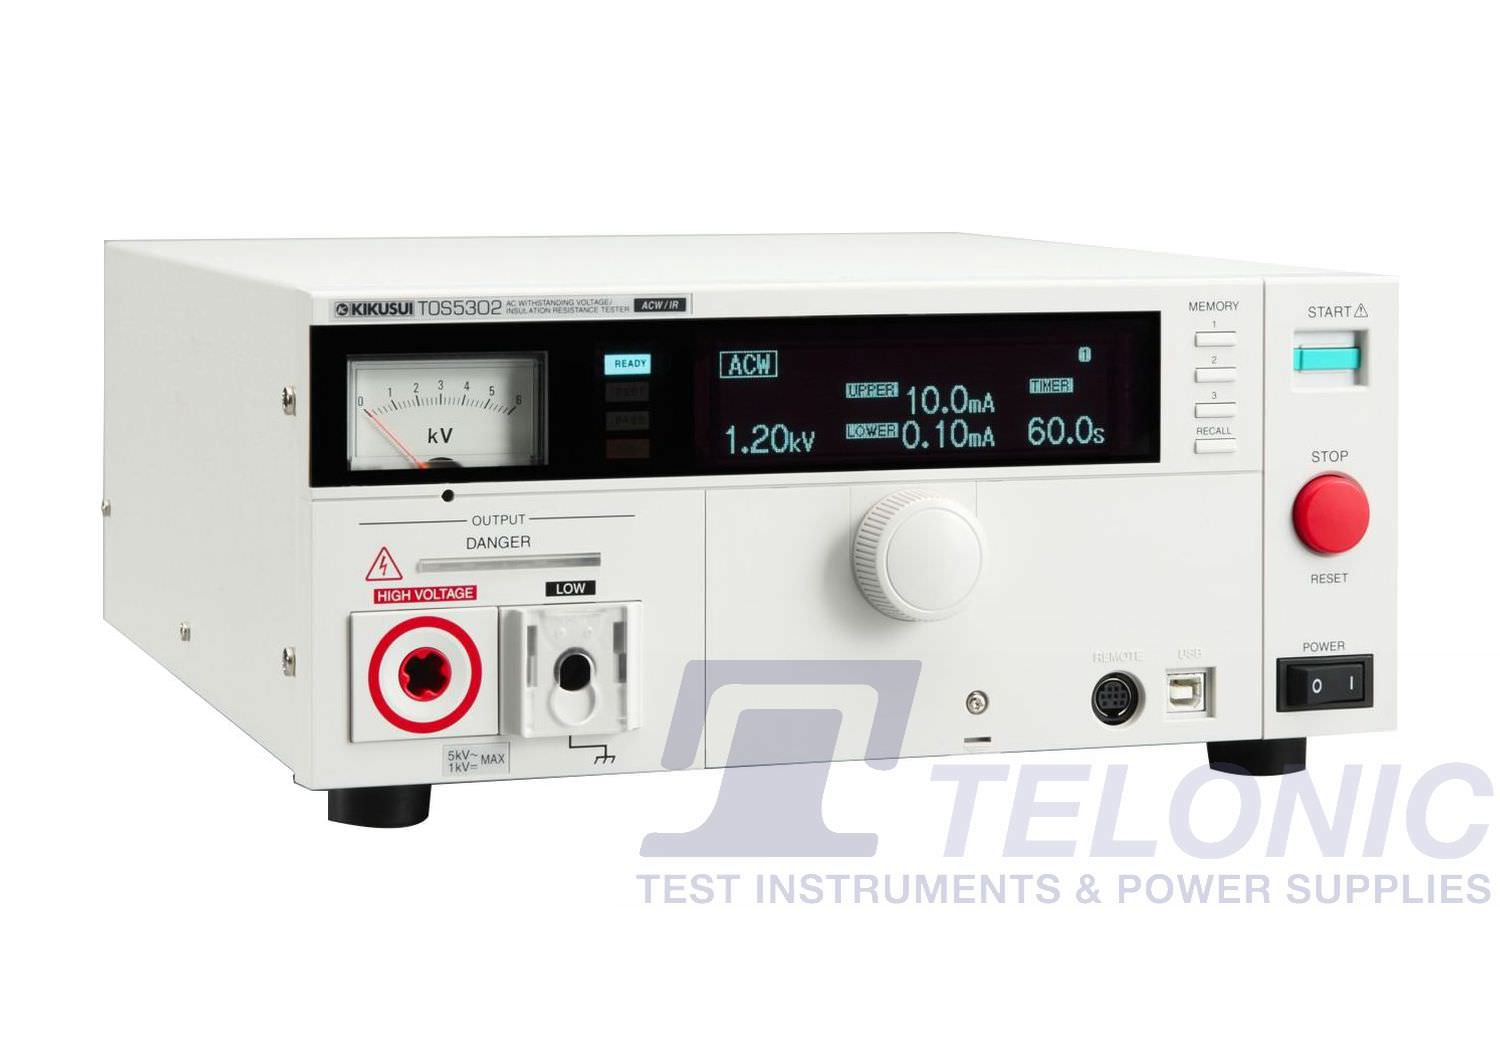 TOS5302   [5kV AC] Flash Test (HIPOT Tester) and Insulation Resistance Tester